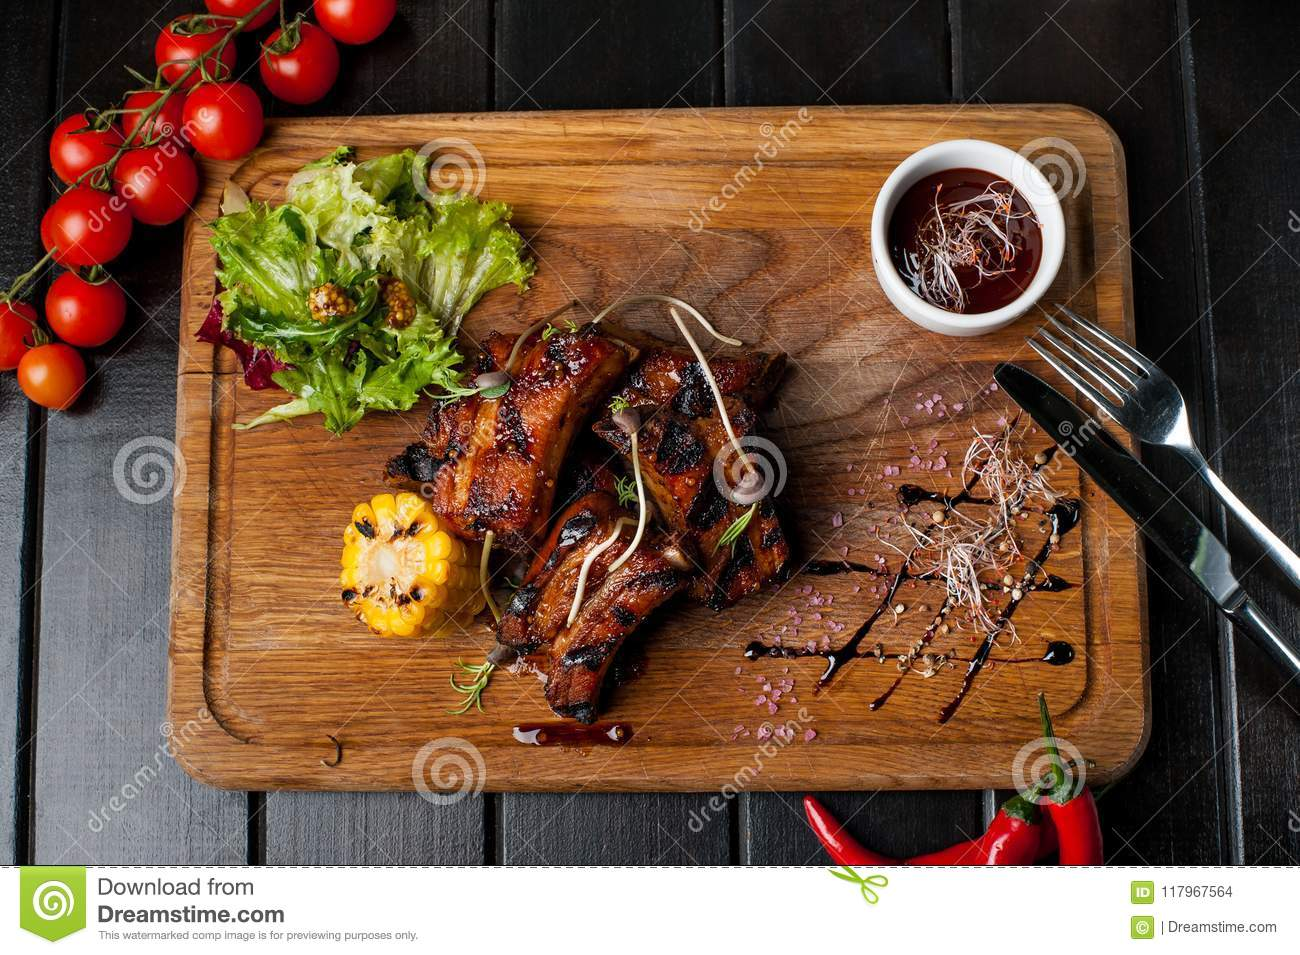 Barbecued Ribs with Rosemary Corn advise